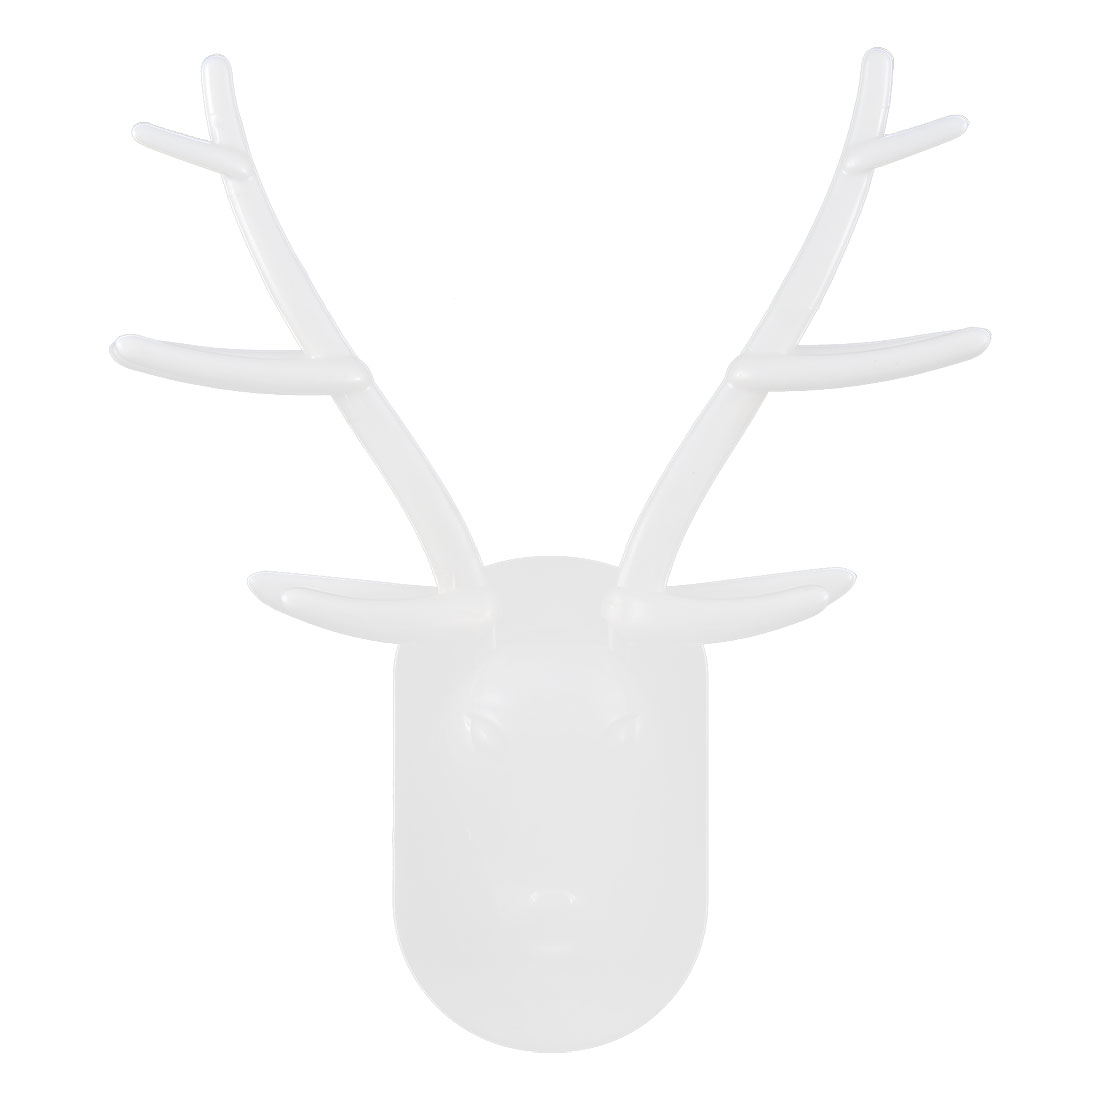 Plastic Reindeer Stag Head Shaped Wall Hanging Toothbrush Holder Container White